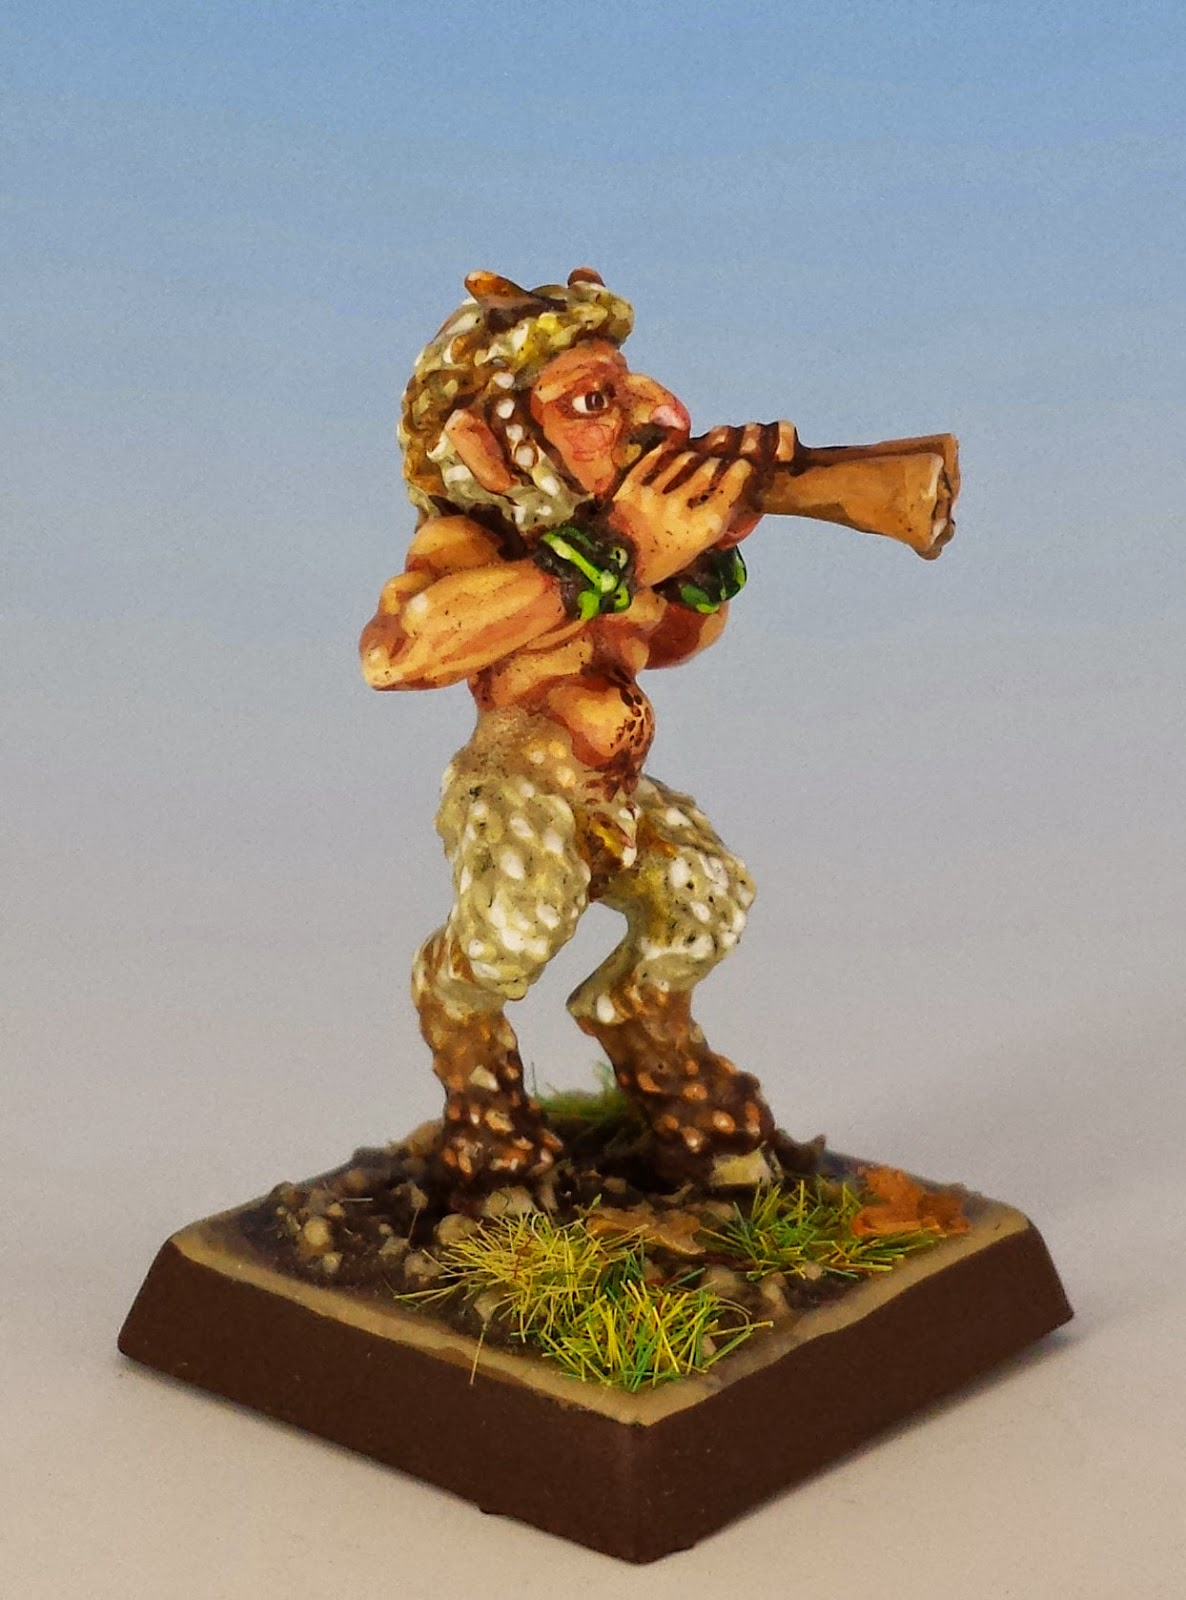 Talisman Satyr, Citadel Miniatures (1986, sculpted by Aly Morrison, painted by M. Sullivan)